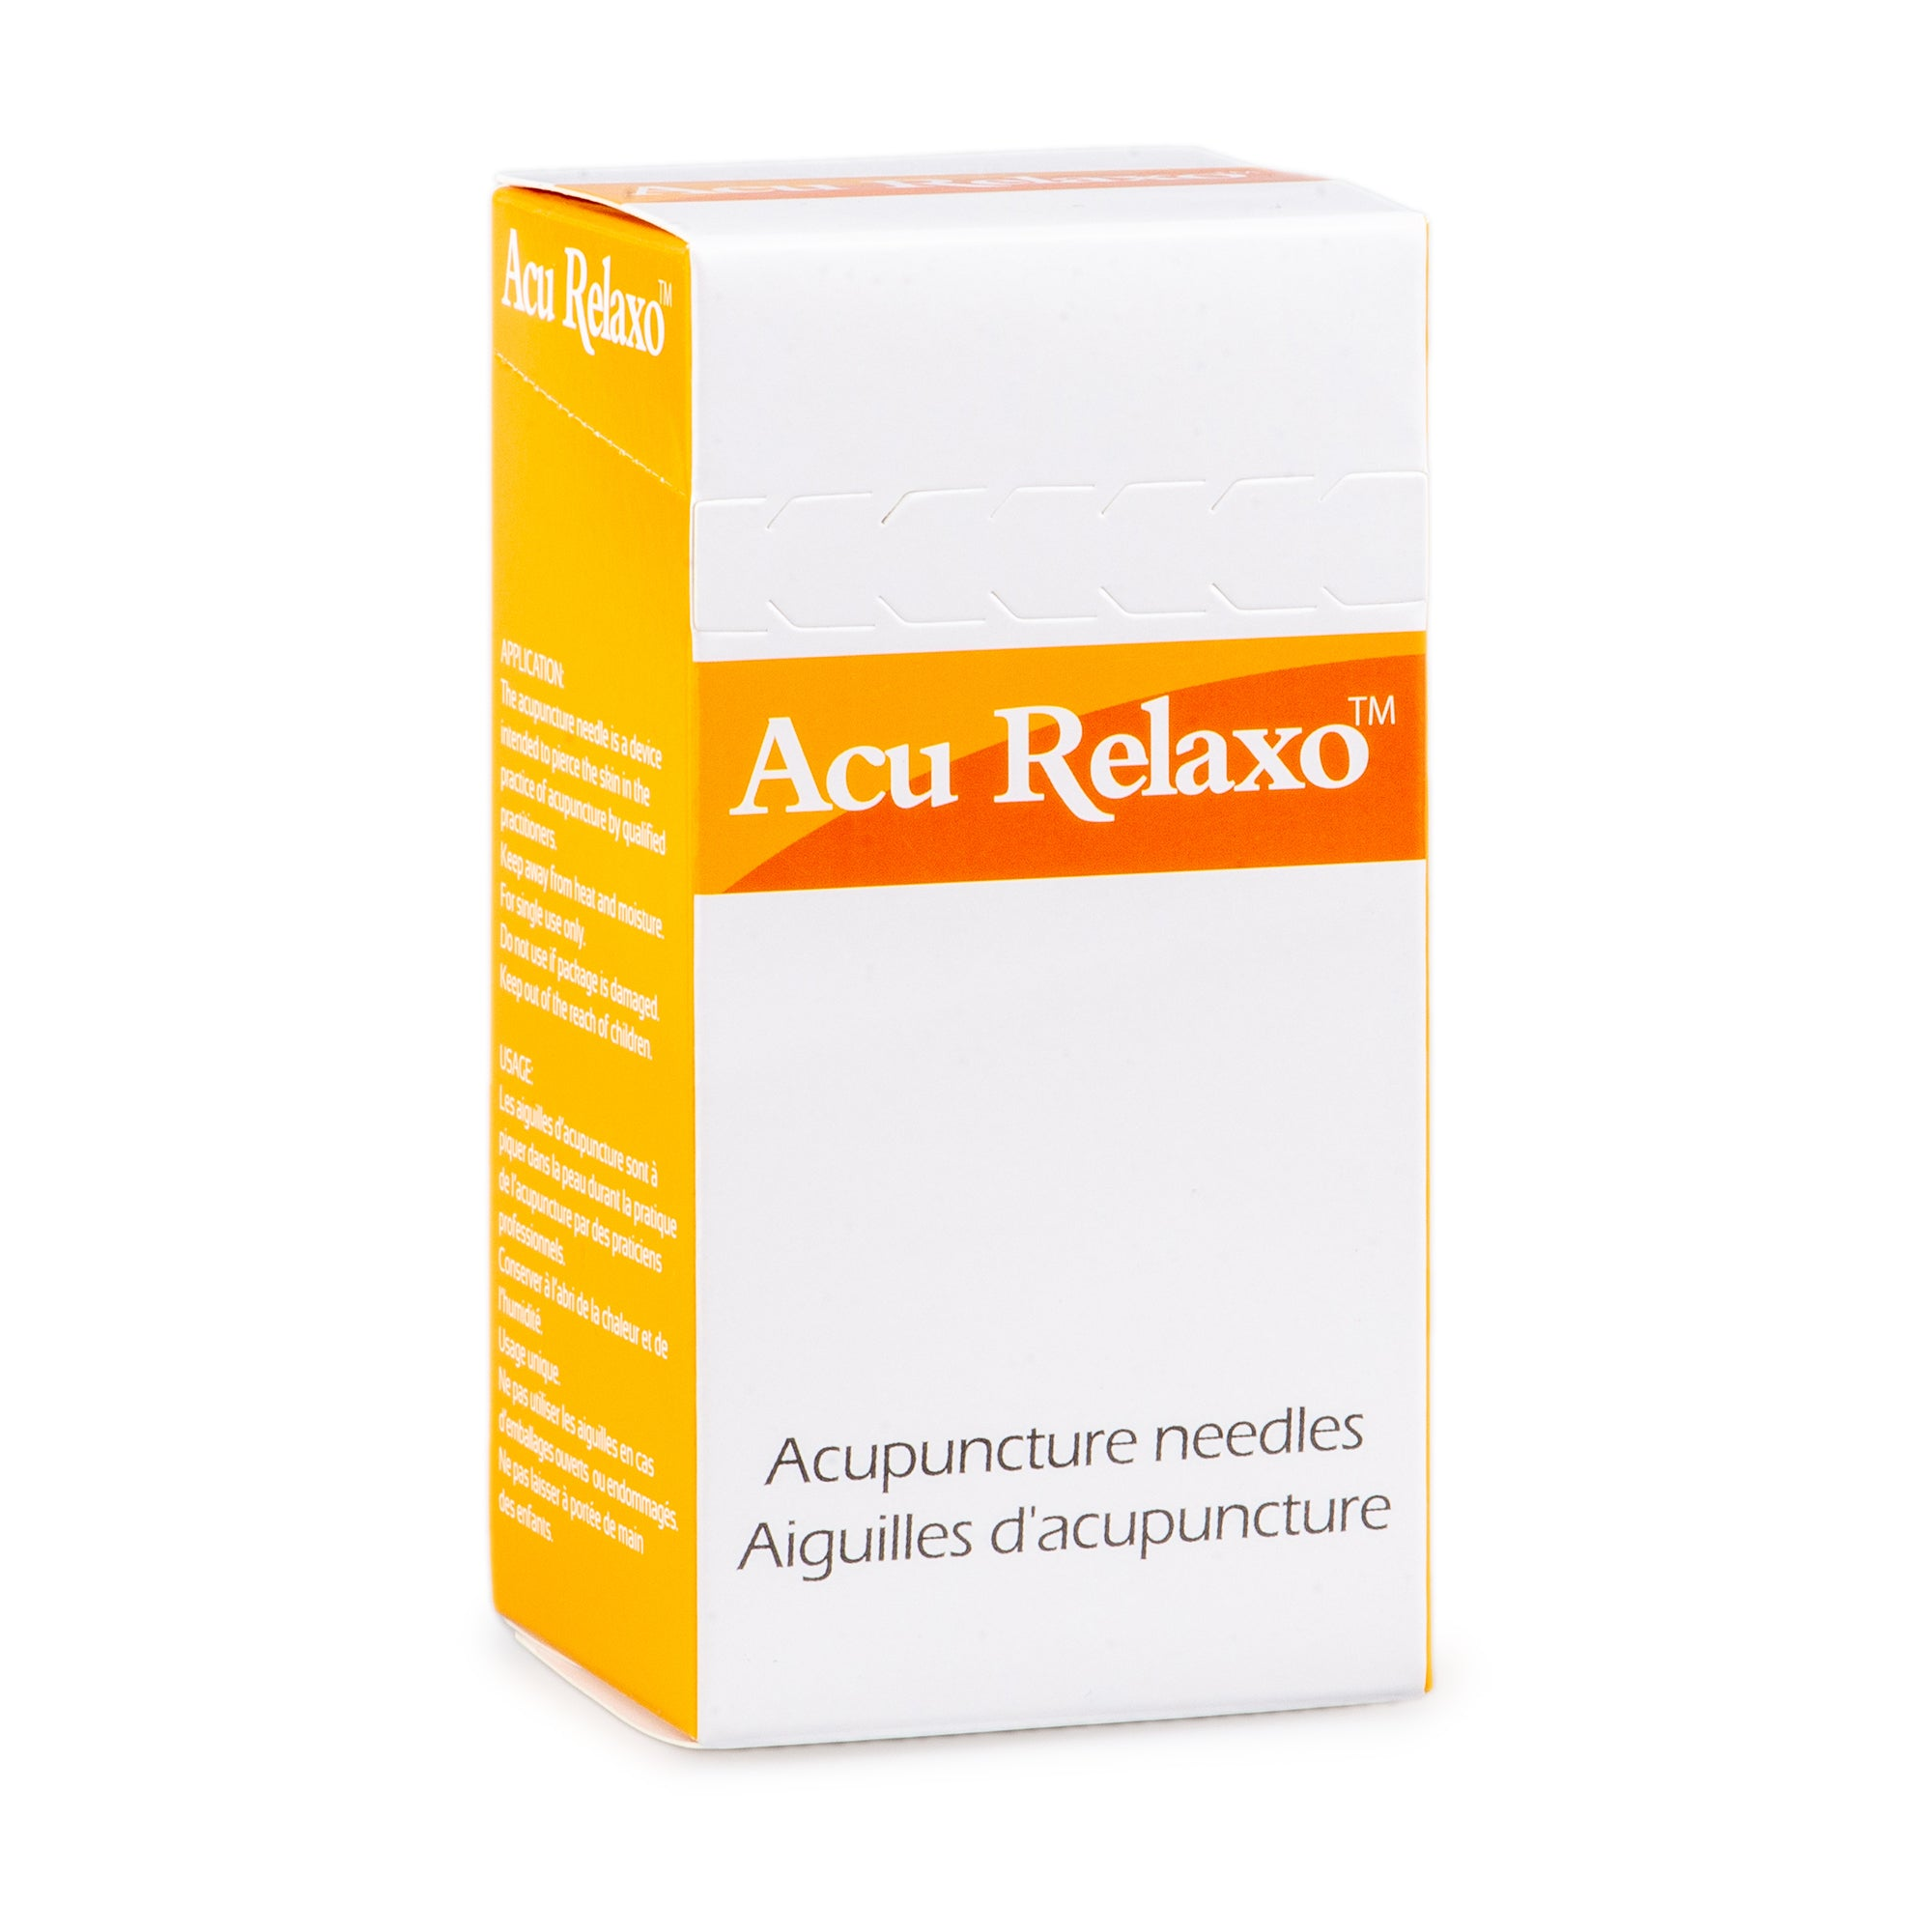 Acu Relaxo™ Acupuncture Needles (100pcs)